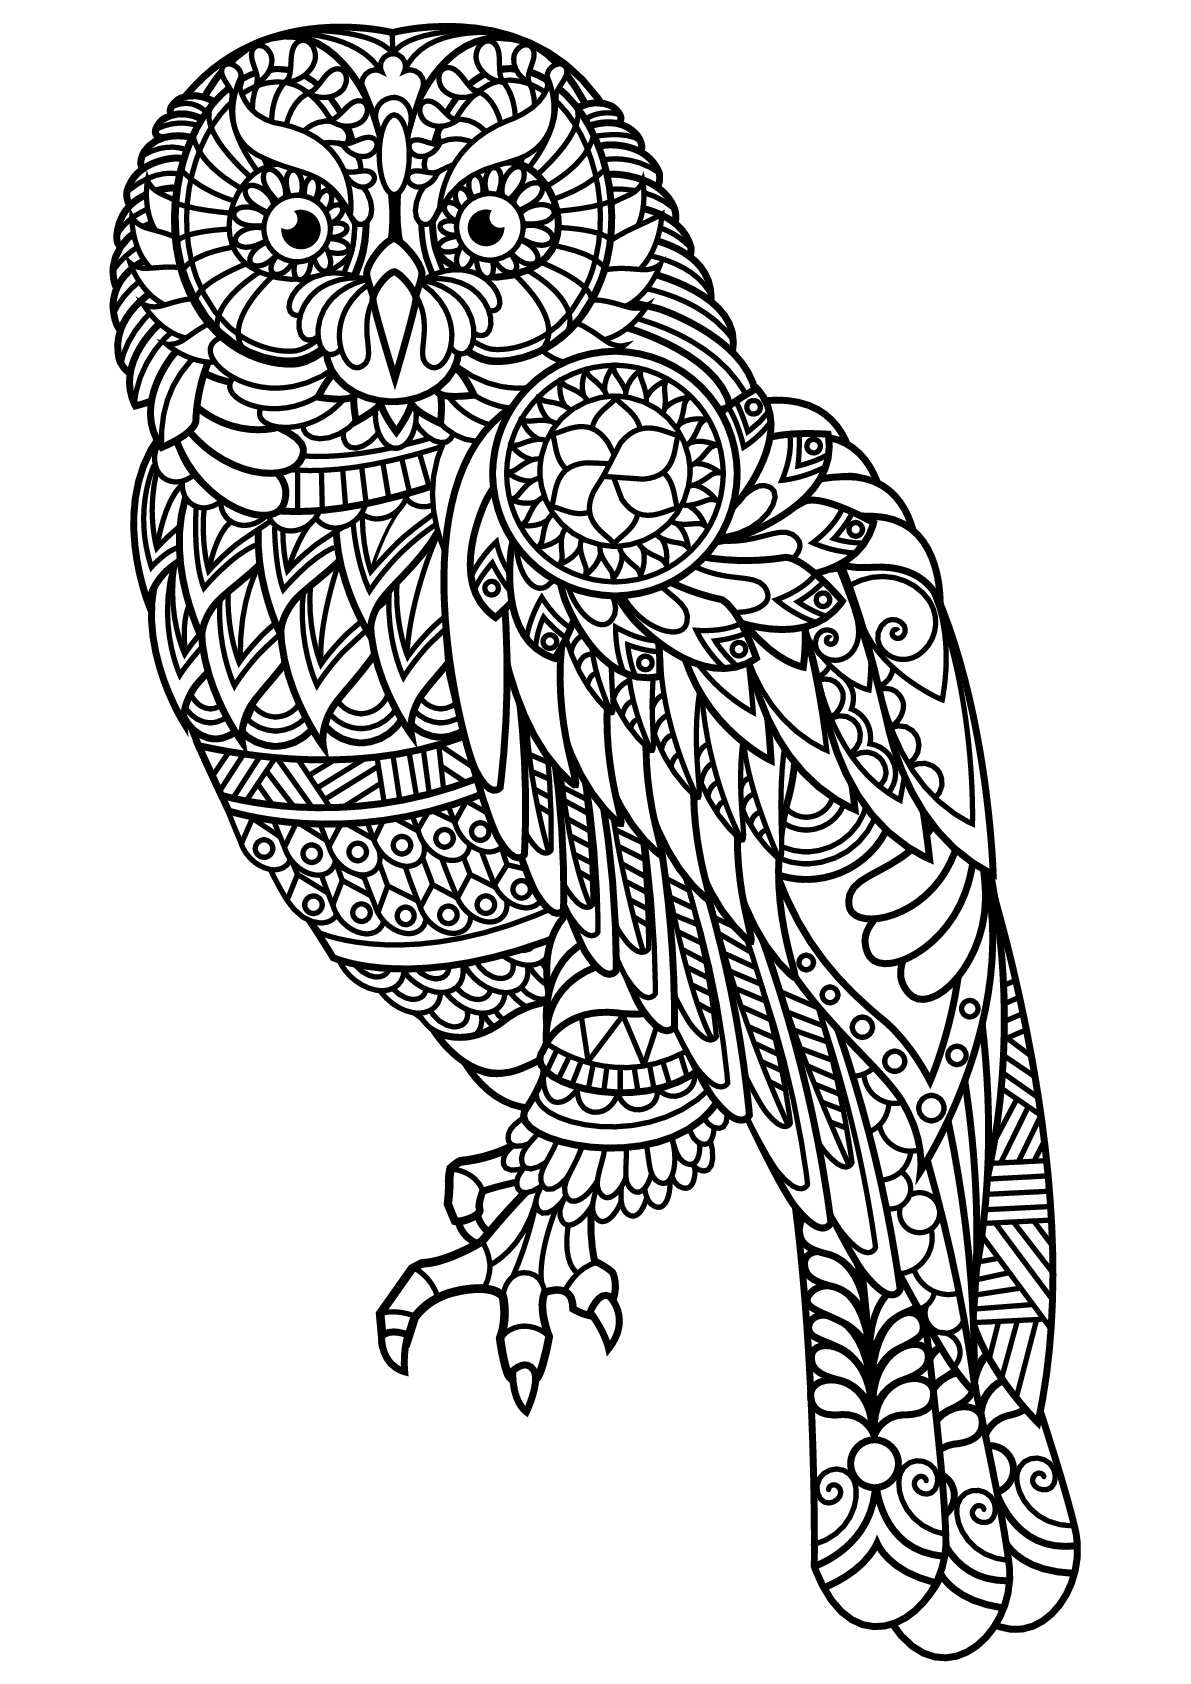 coloring pages owls owls for kids owls kids coloring pages coloring pages owls